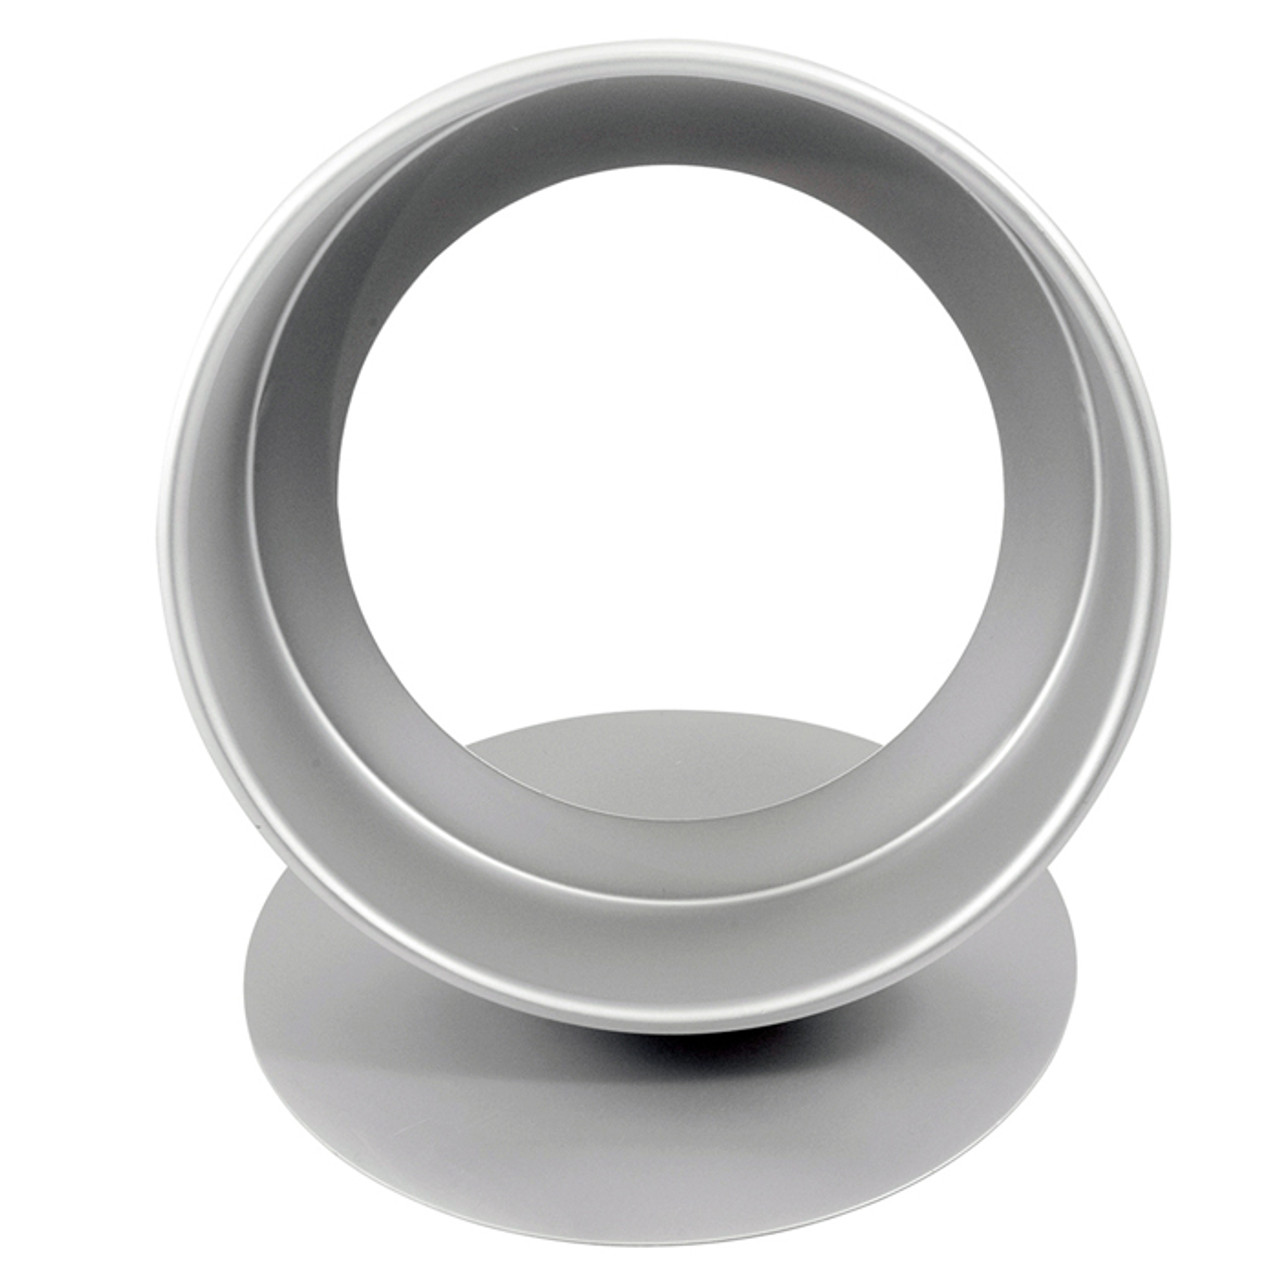 Round Cake Pan Removable Bottom 4x2 The Gourmet Warehouse